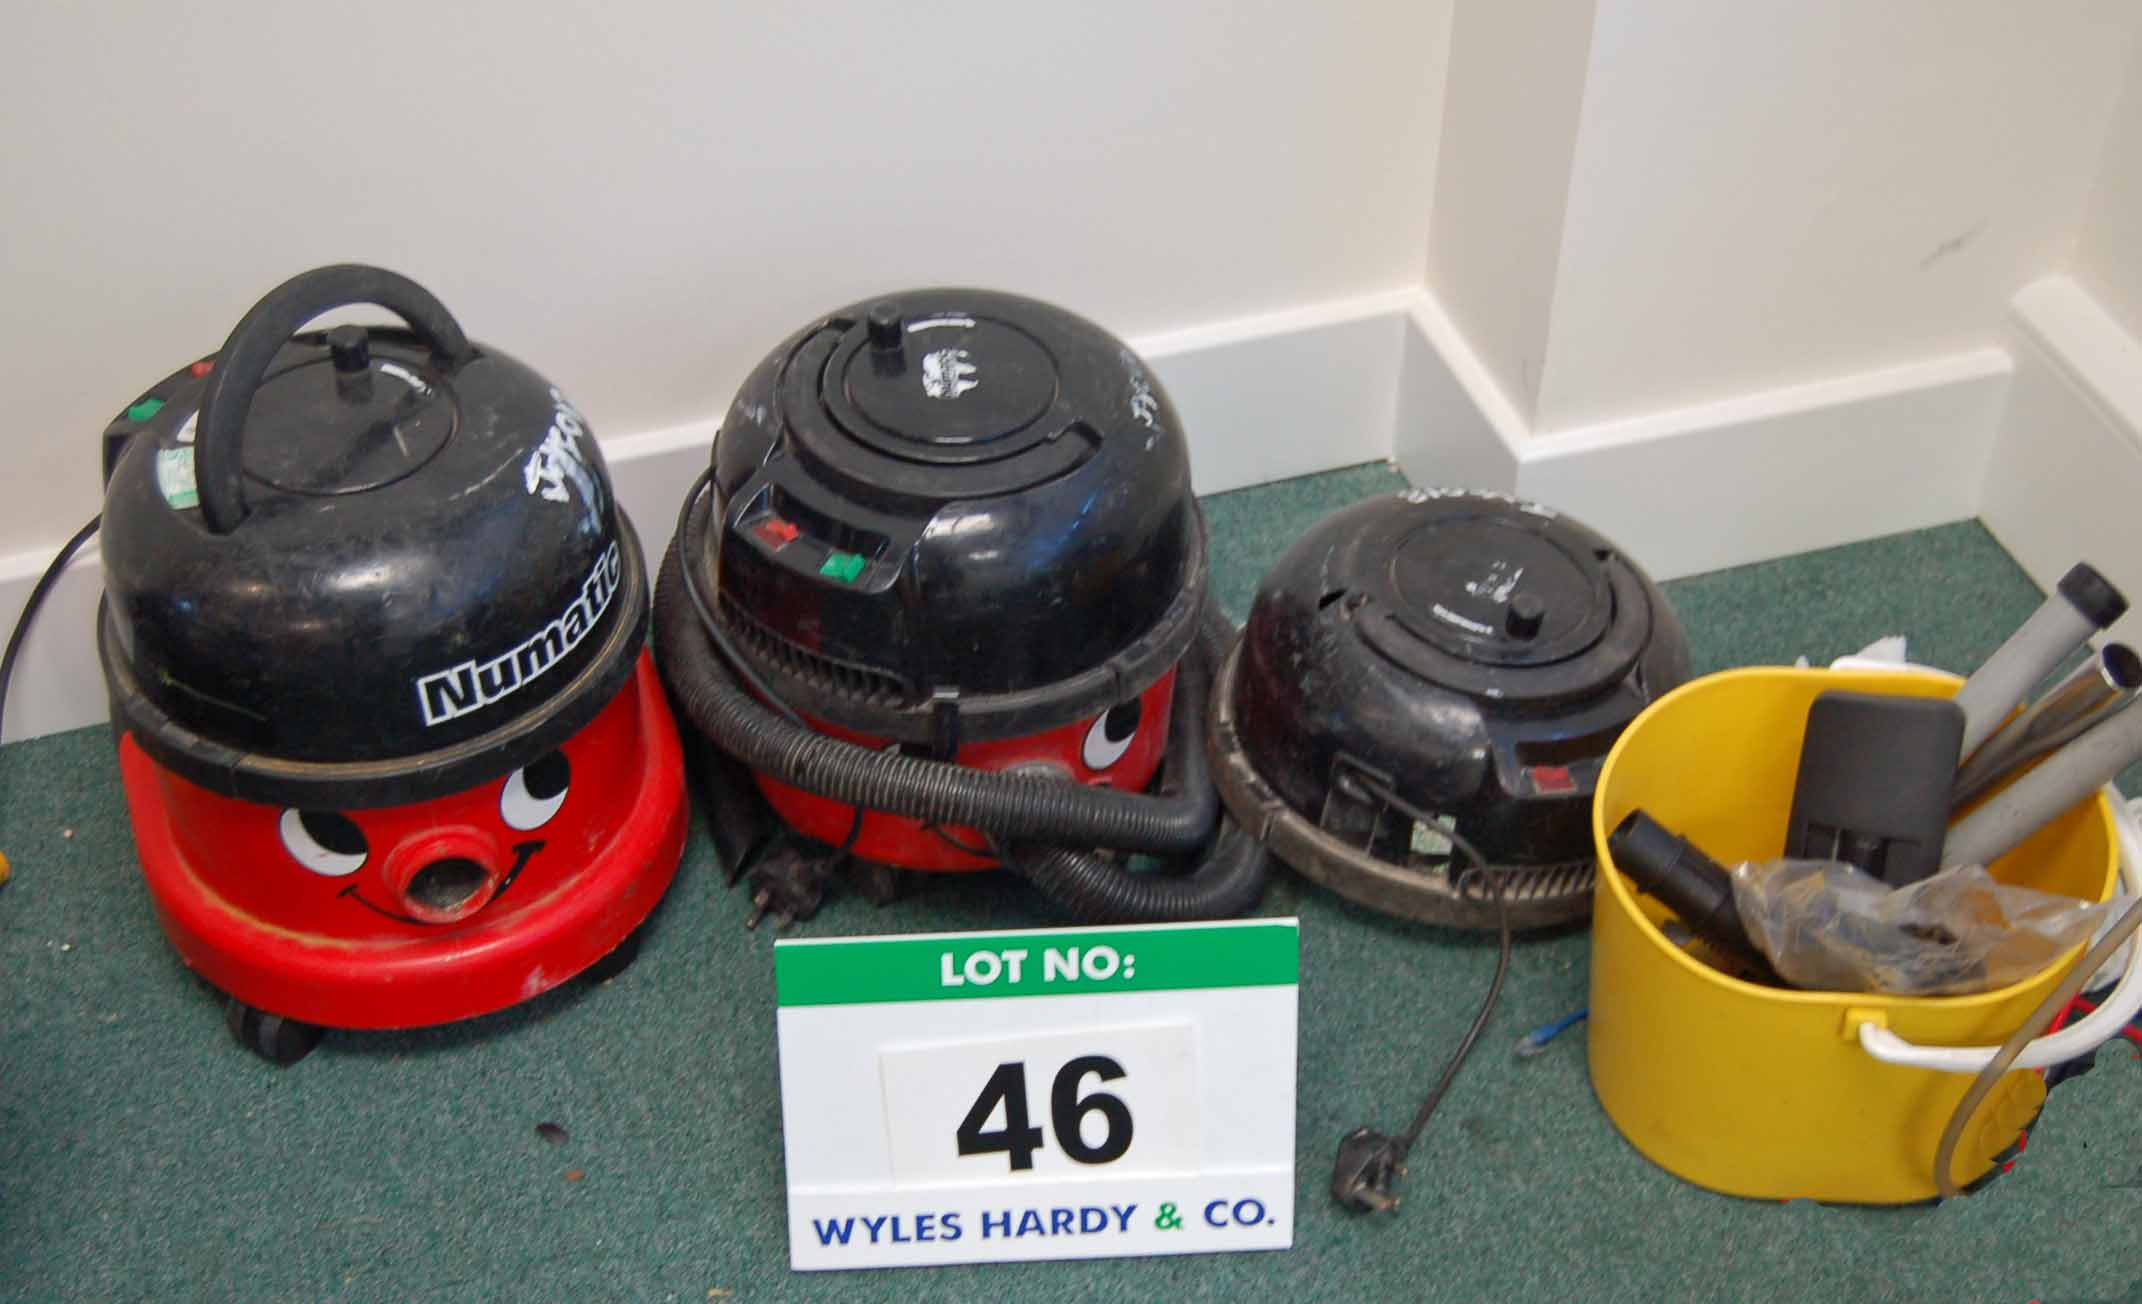 A Quantity of NUMATIC Henry Vacuum Cleaner Used Spare Parts and Accessories (As Photographed)